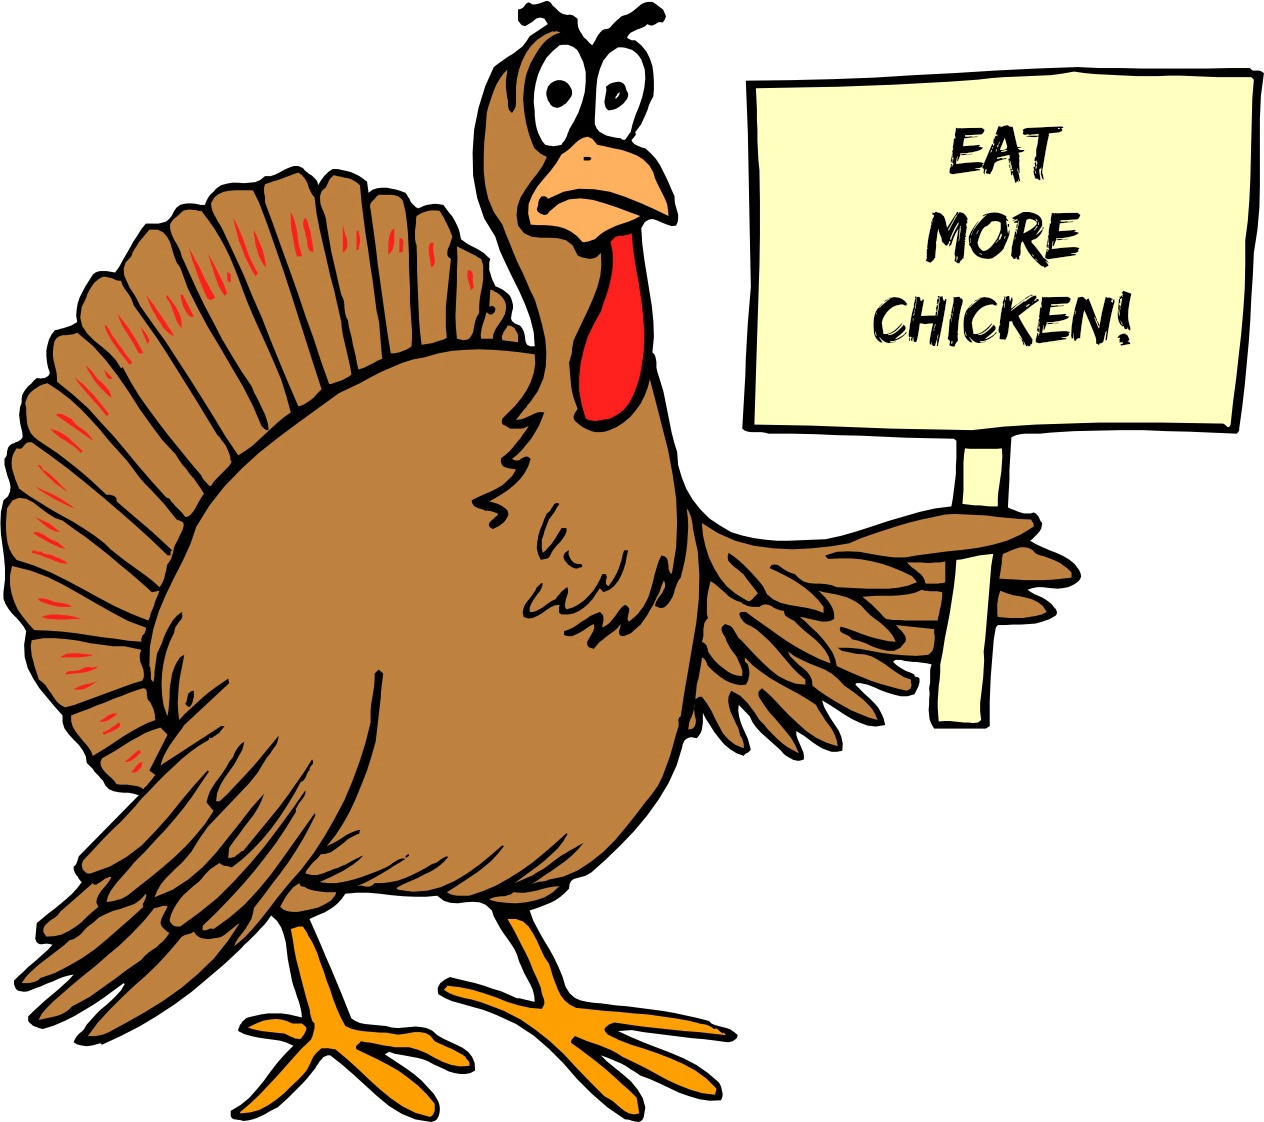 It's TURKEY Time! : T&L Catering / Leon's Catering